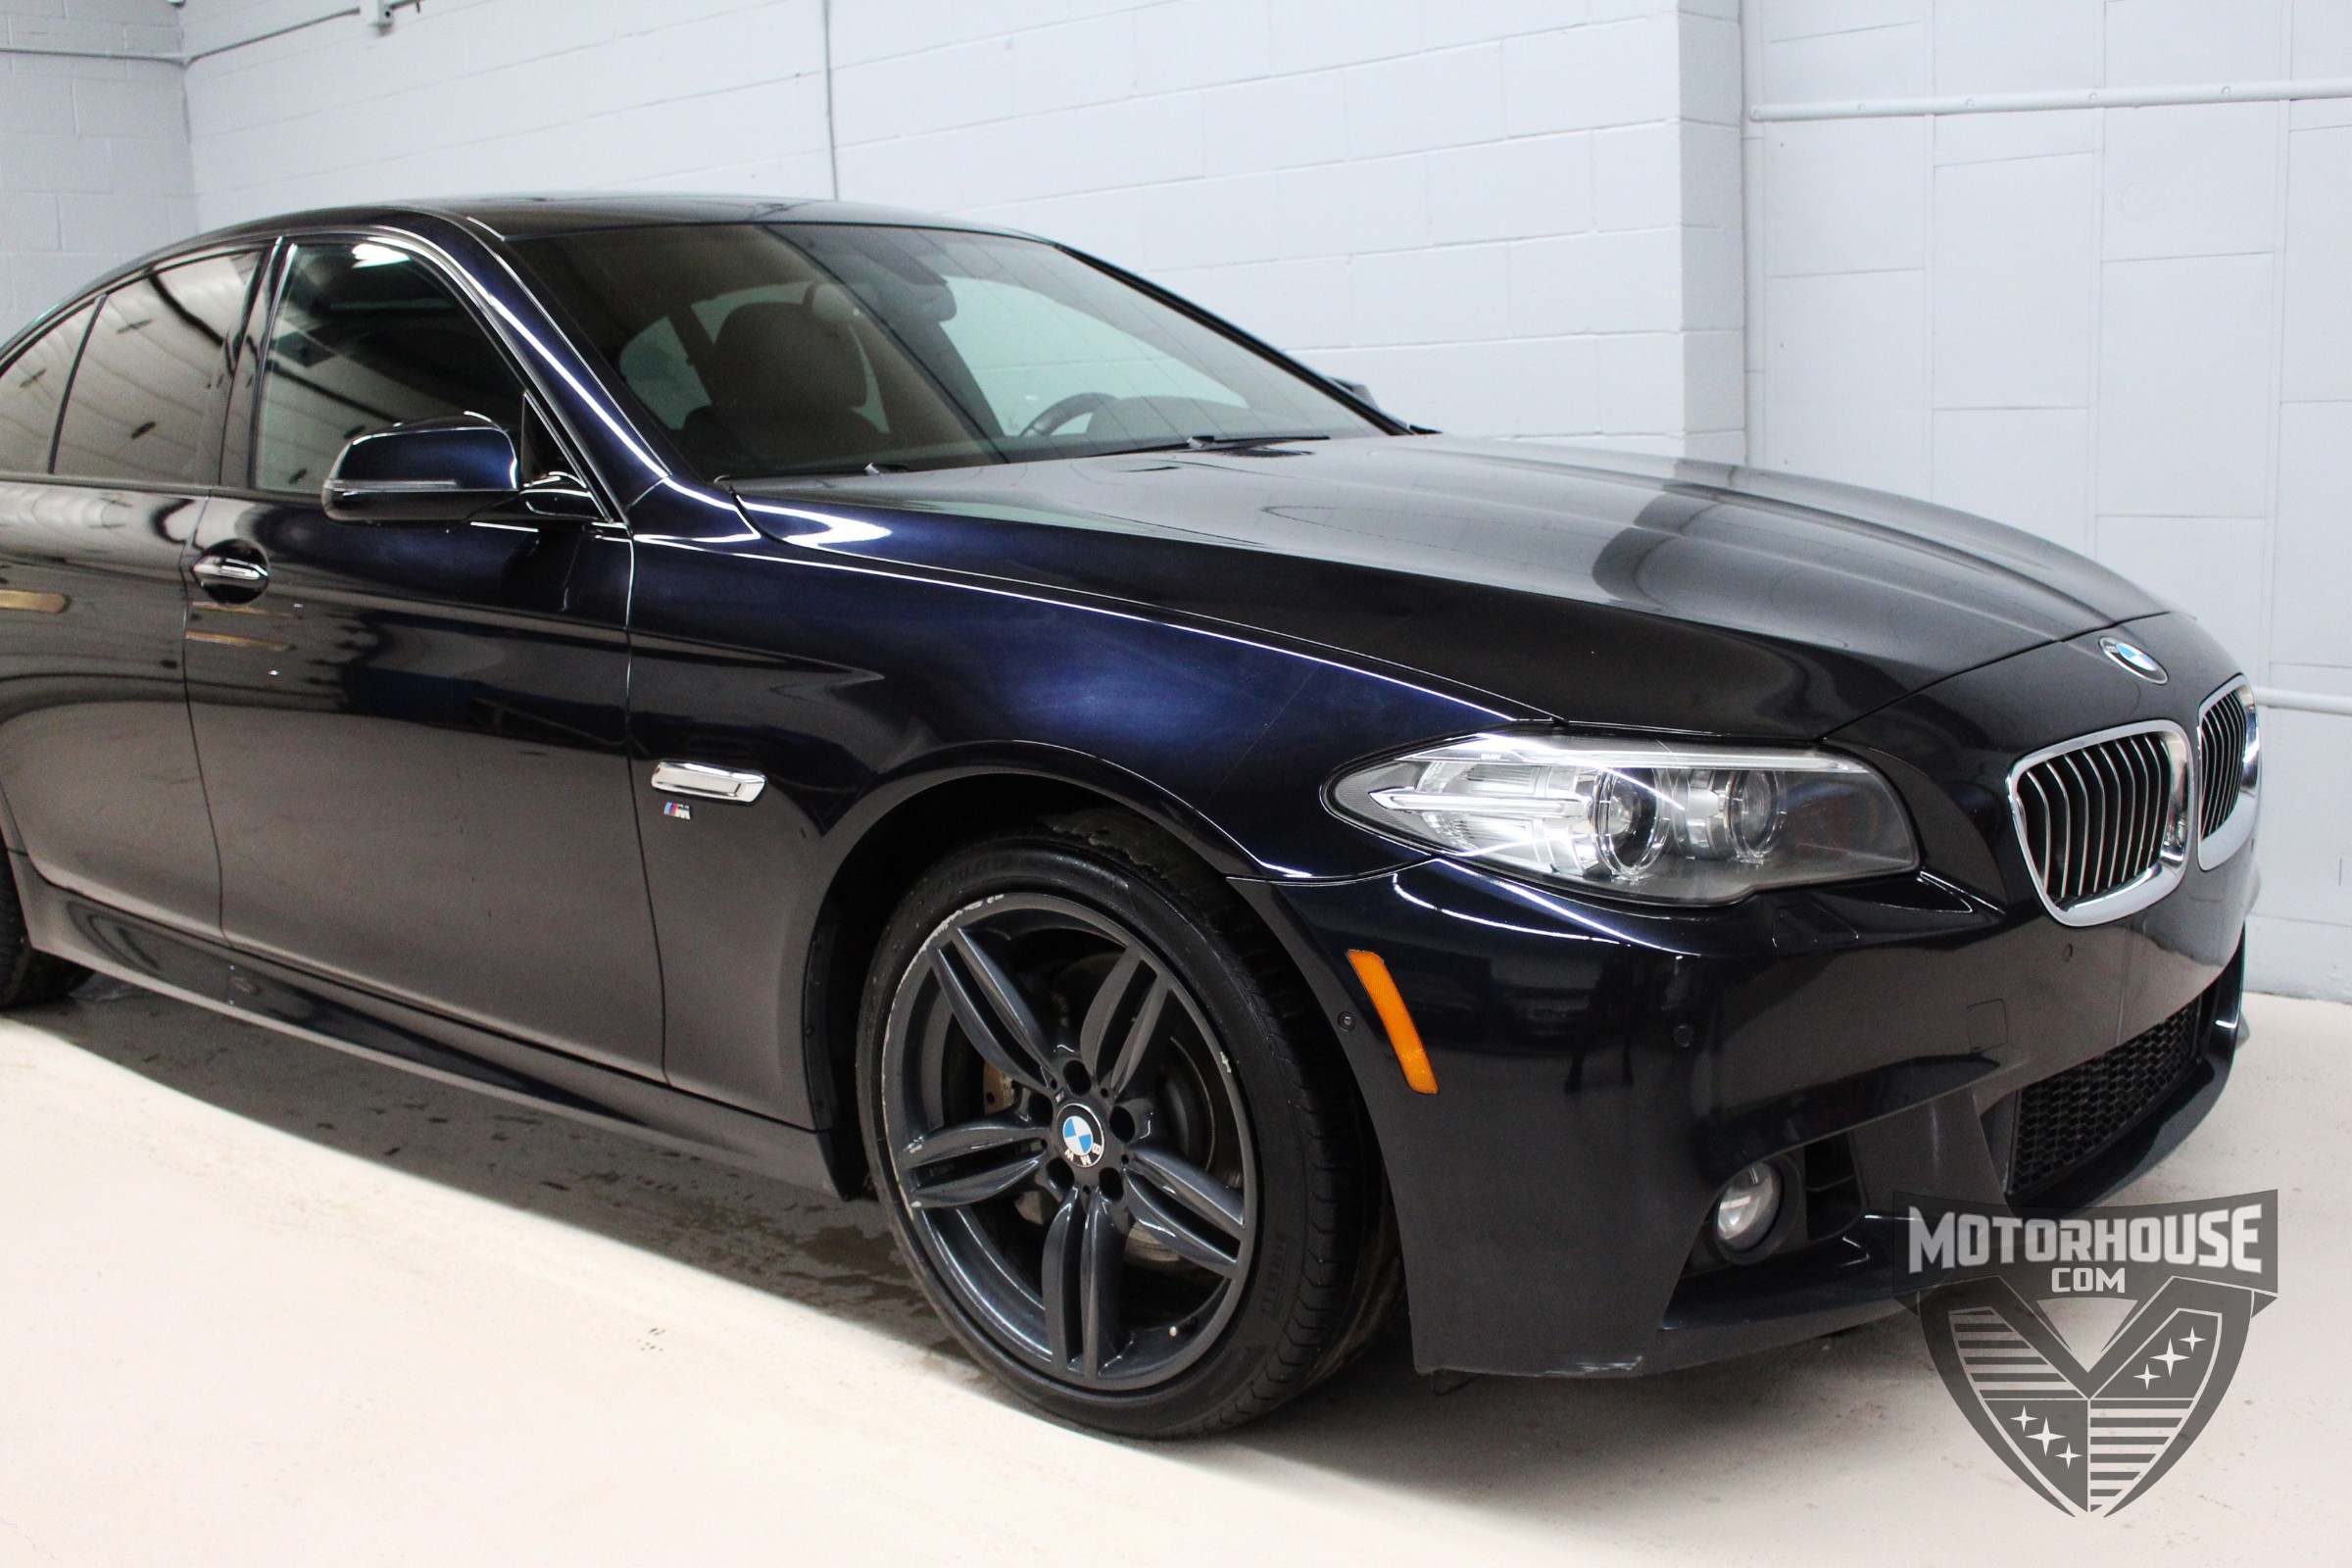 2014 BMW 535d xDrive (Stk: 1641) in Carleton Place - Image 11 of 31